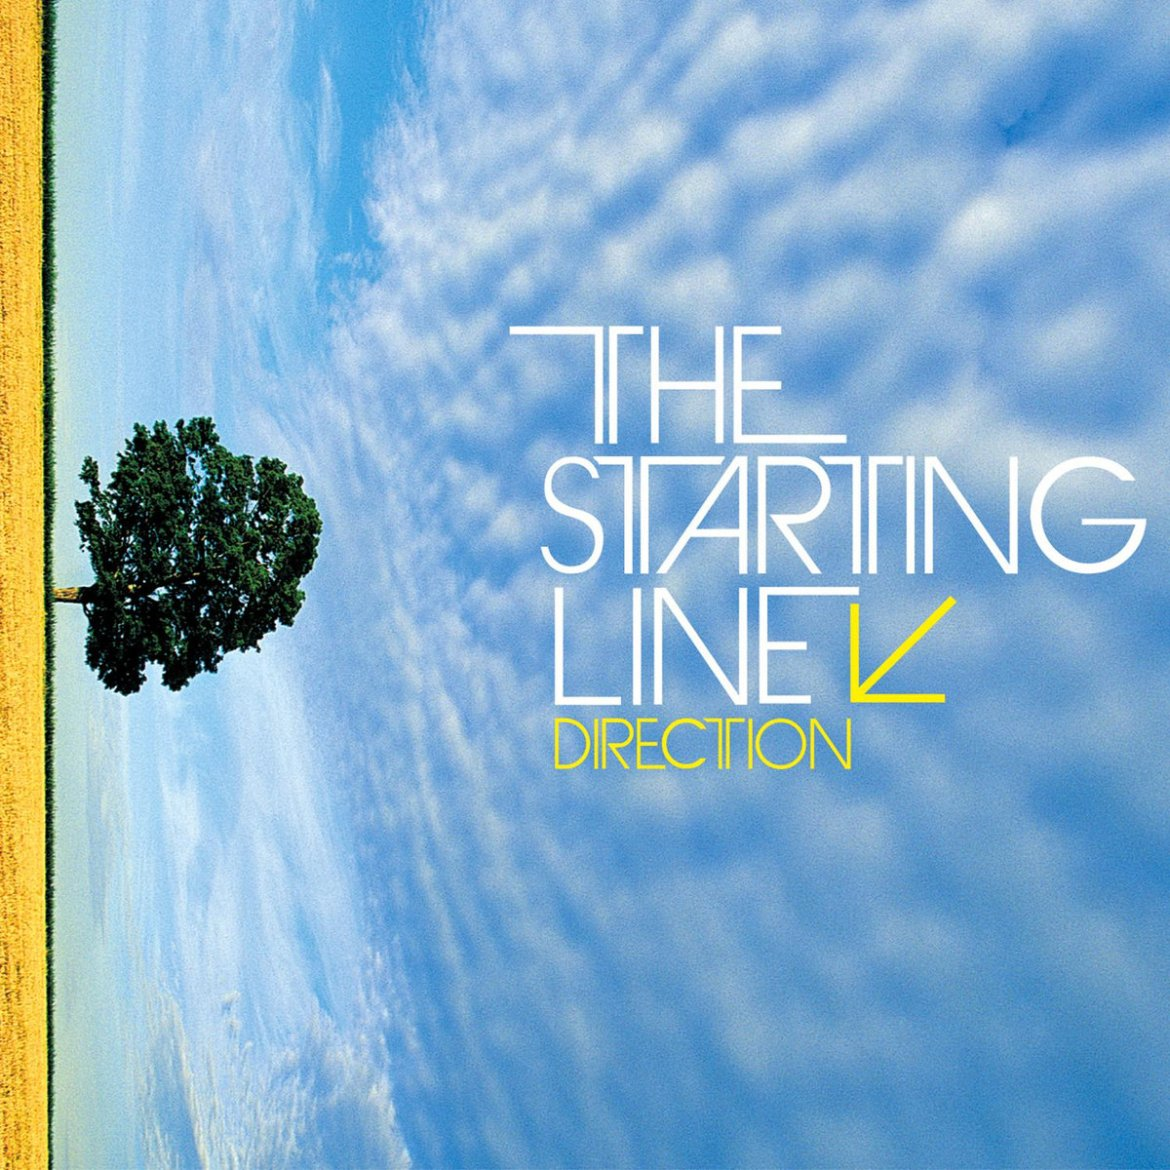 Album cover is a sideways picture of a blue sky with grass and a tree on the left side of the image. The name of the band and album are located towards the center of the image.